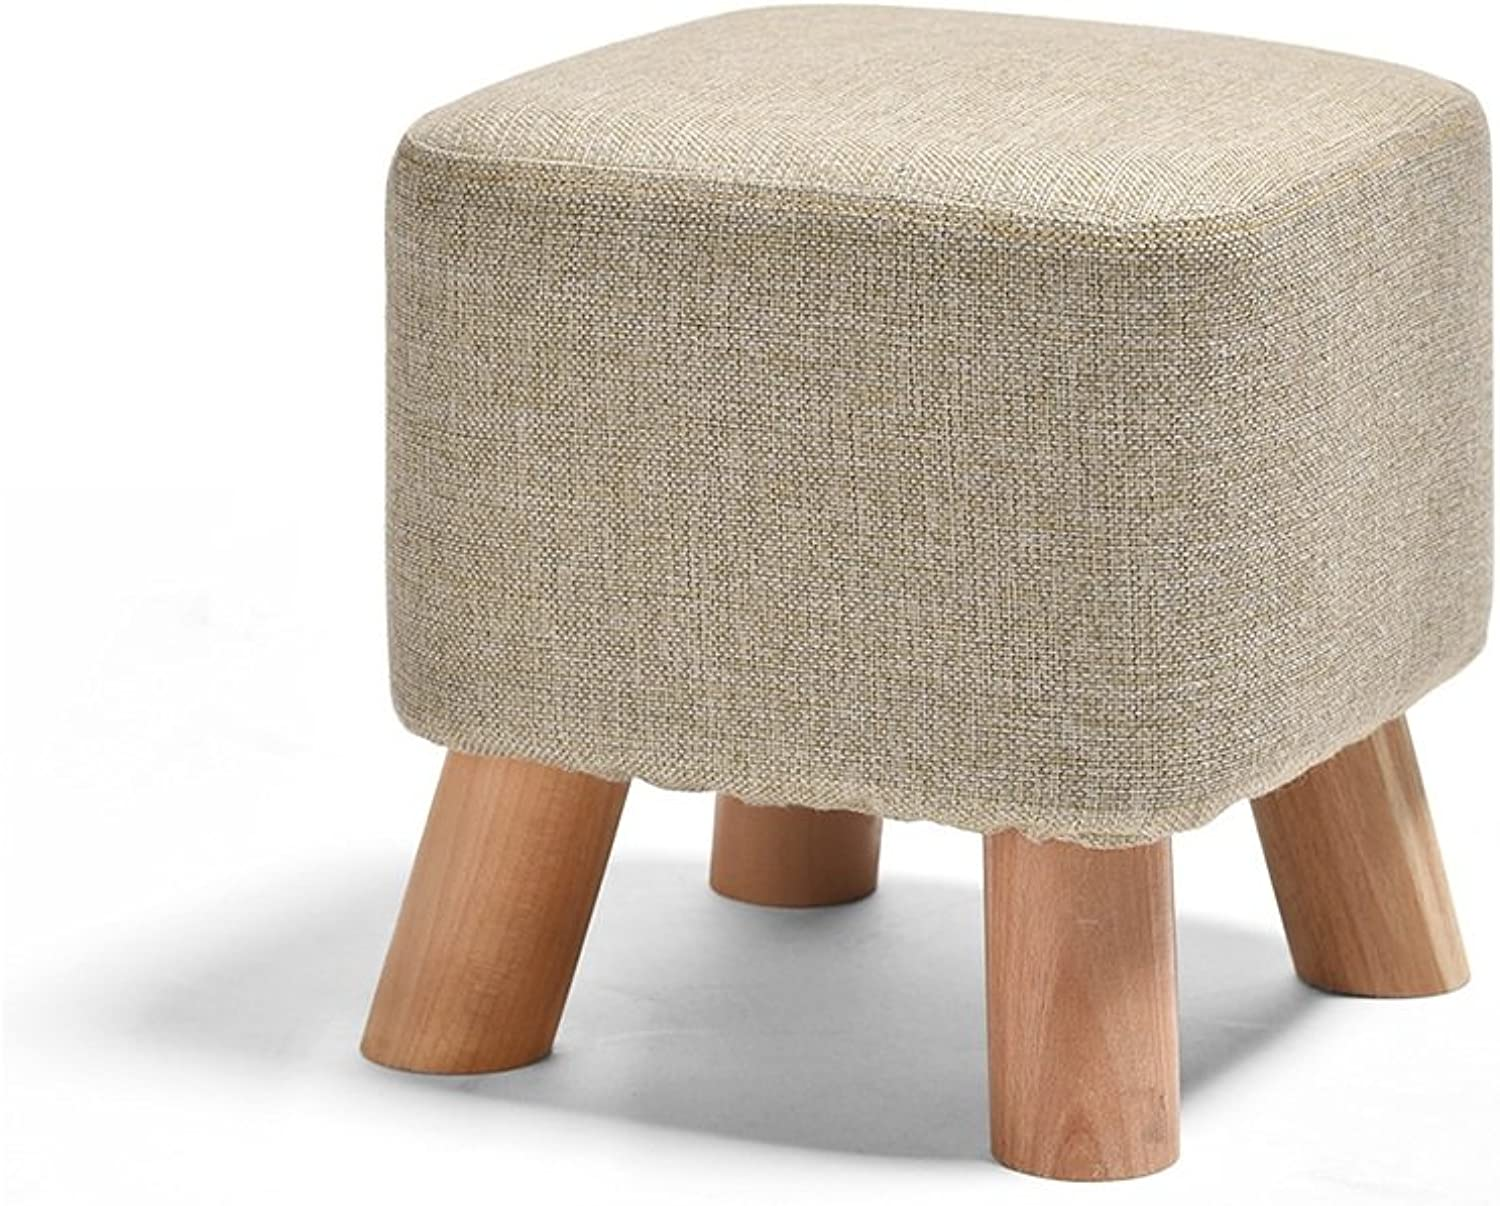 ZZHF dengzi Creative Cloth Footstool Changing His shoes Stool Bench Solid Wood Sofa Stool (6 Sizes Optional) (color   A, Size   29  29cm)